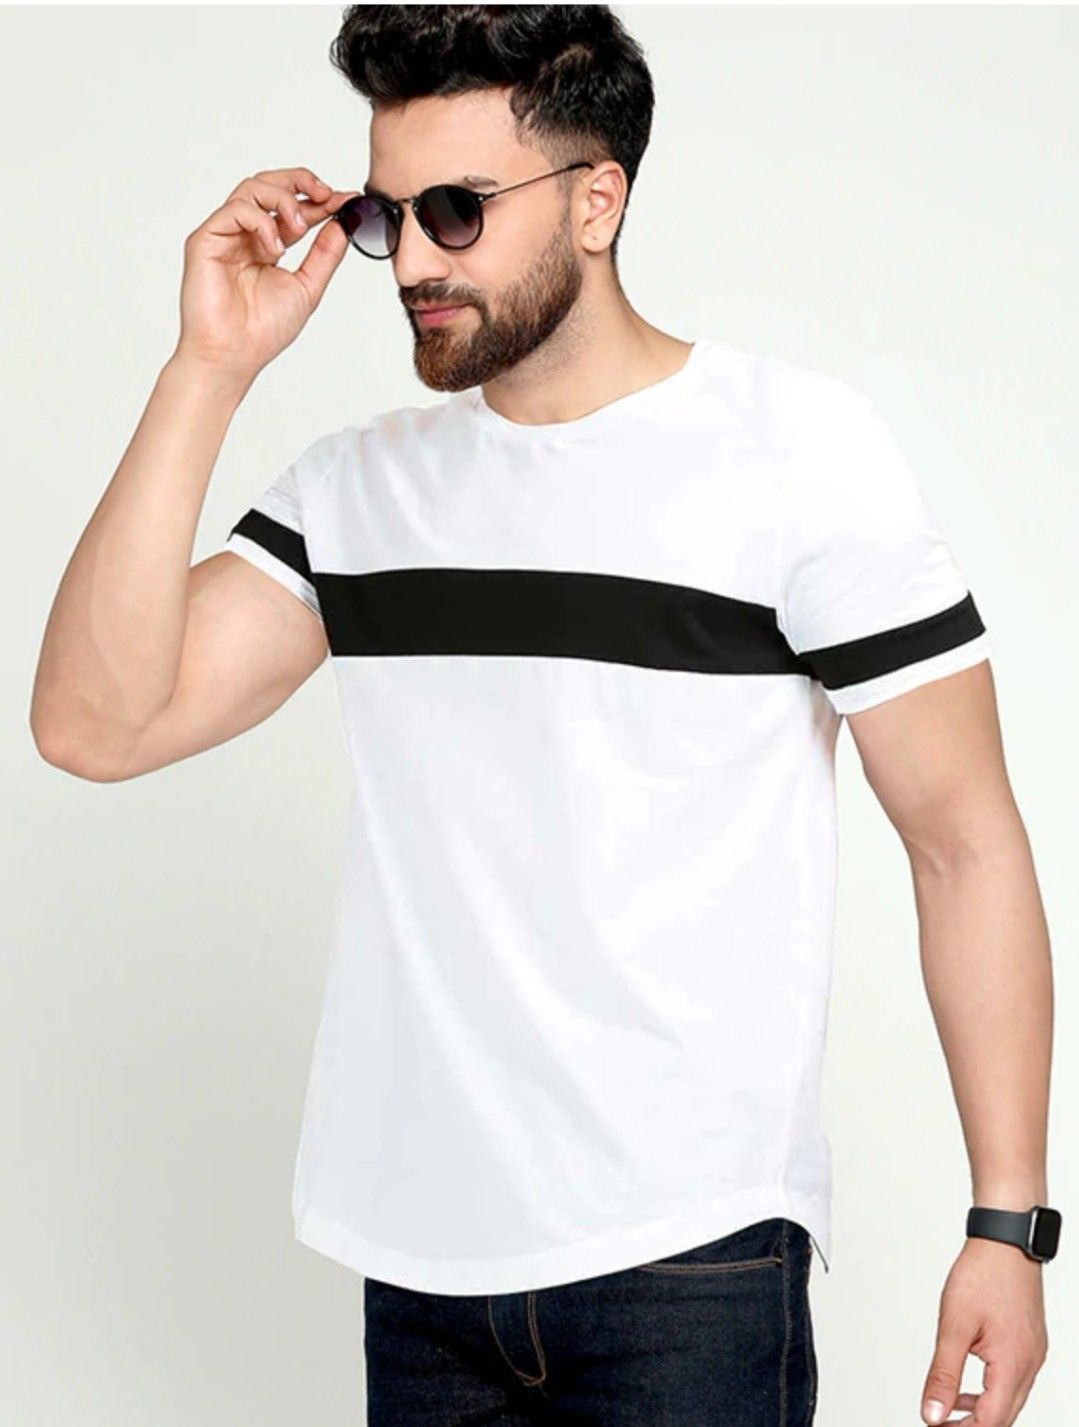 35+ Casual t shirts for men ideas info